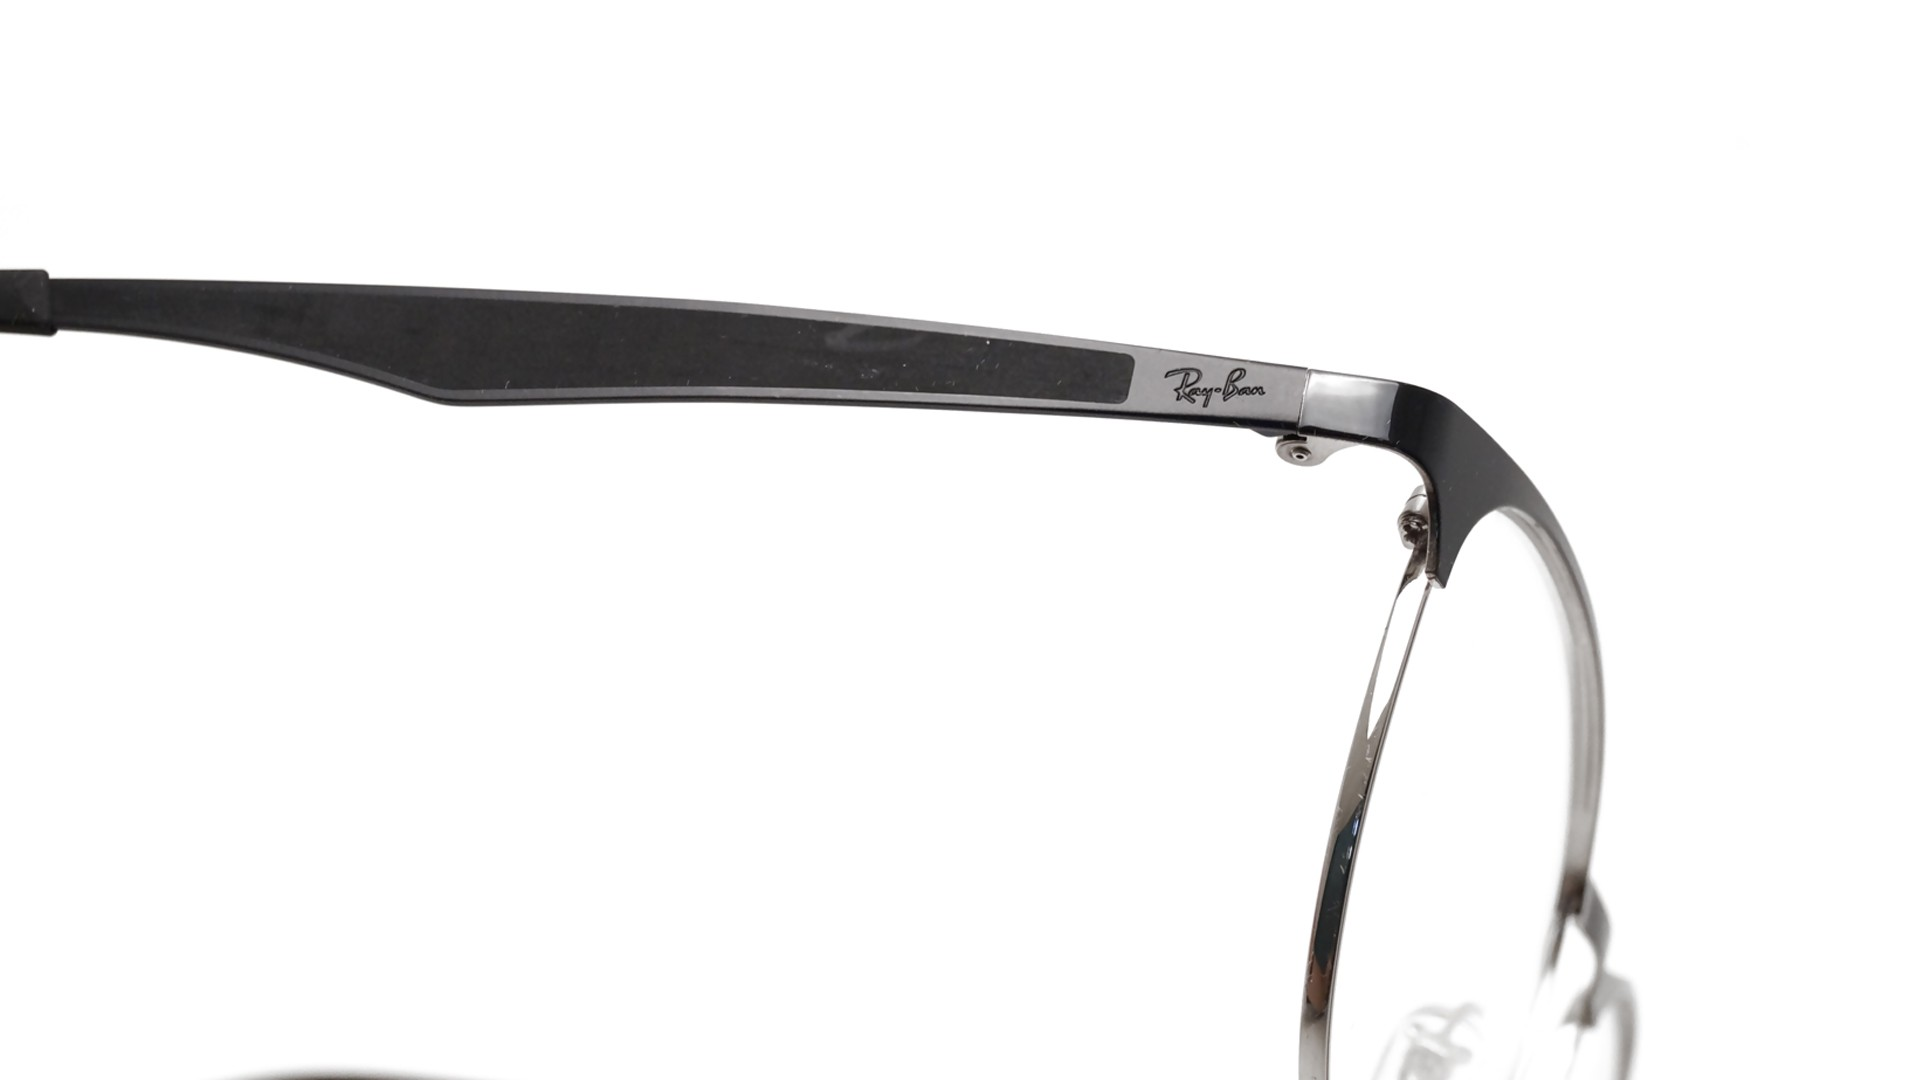 9b1f614bb66 ray ban clubmaster sunglasses black and silver luxottica ray-ban ...